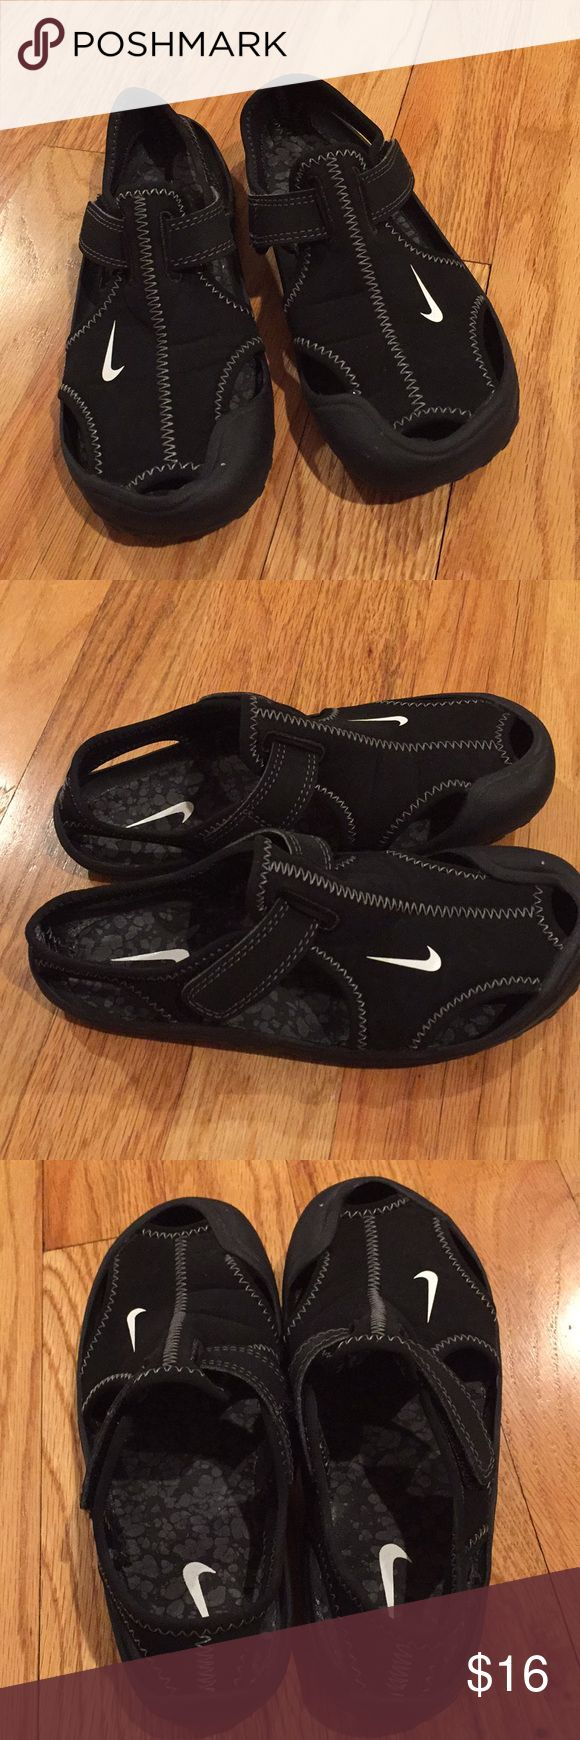 Nike boy water shoes final price Worn twice but look very good and clean as the pic shows Nike Shoes Water Shoes